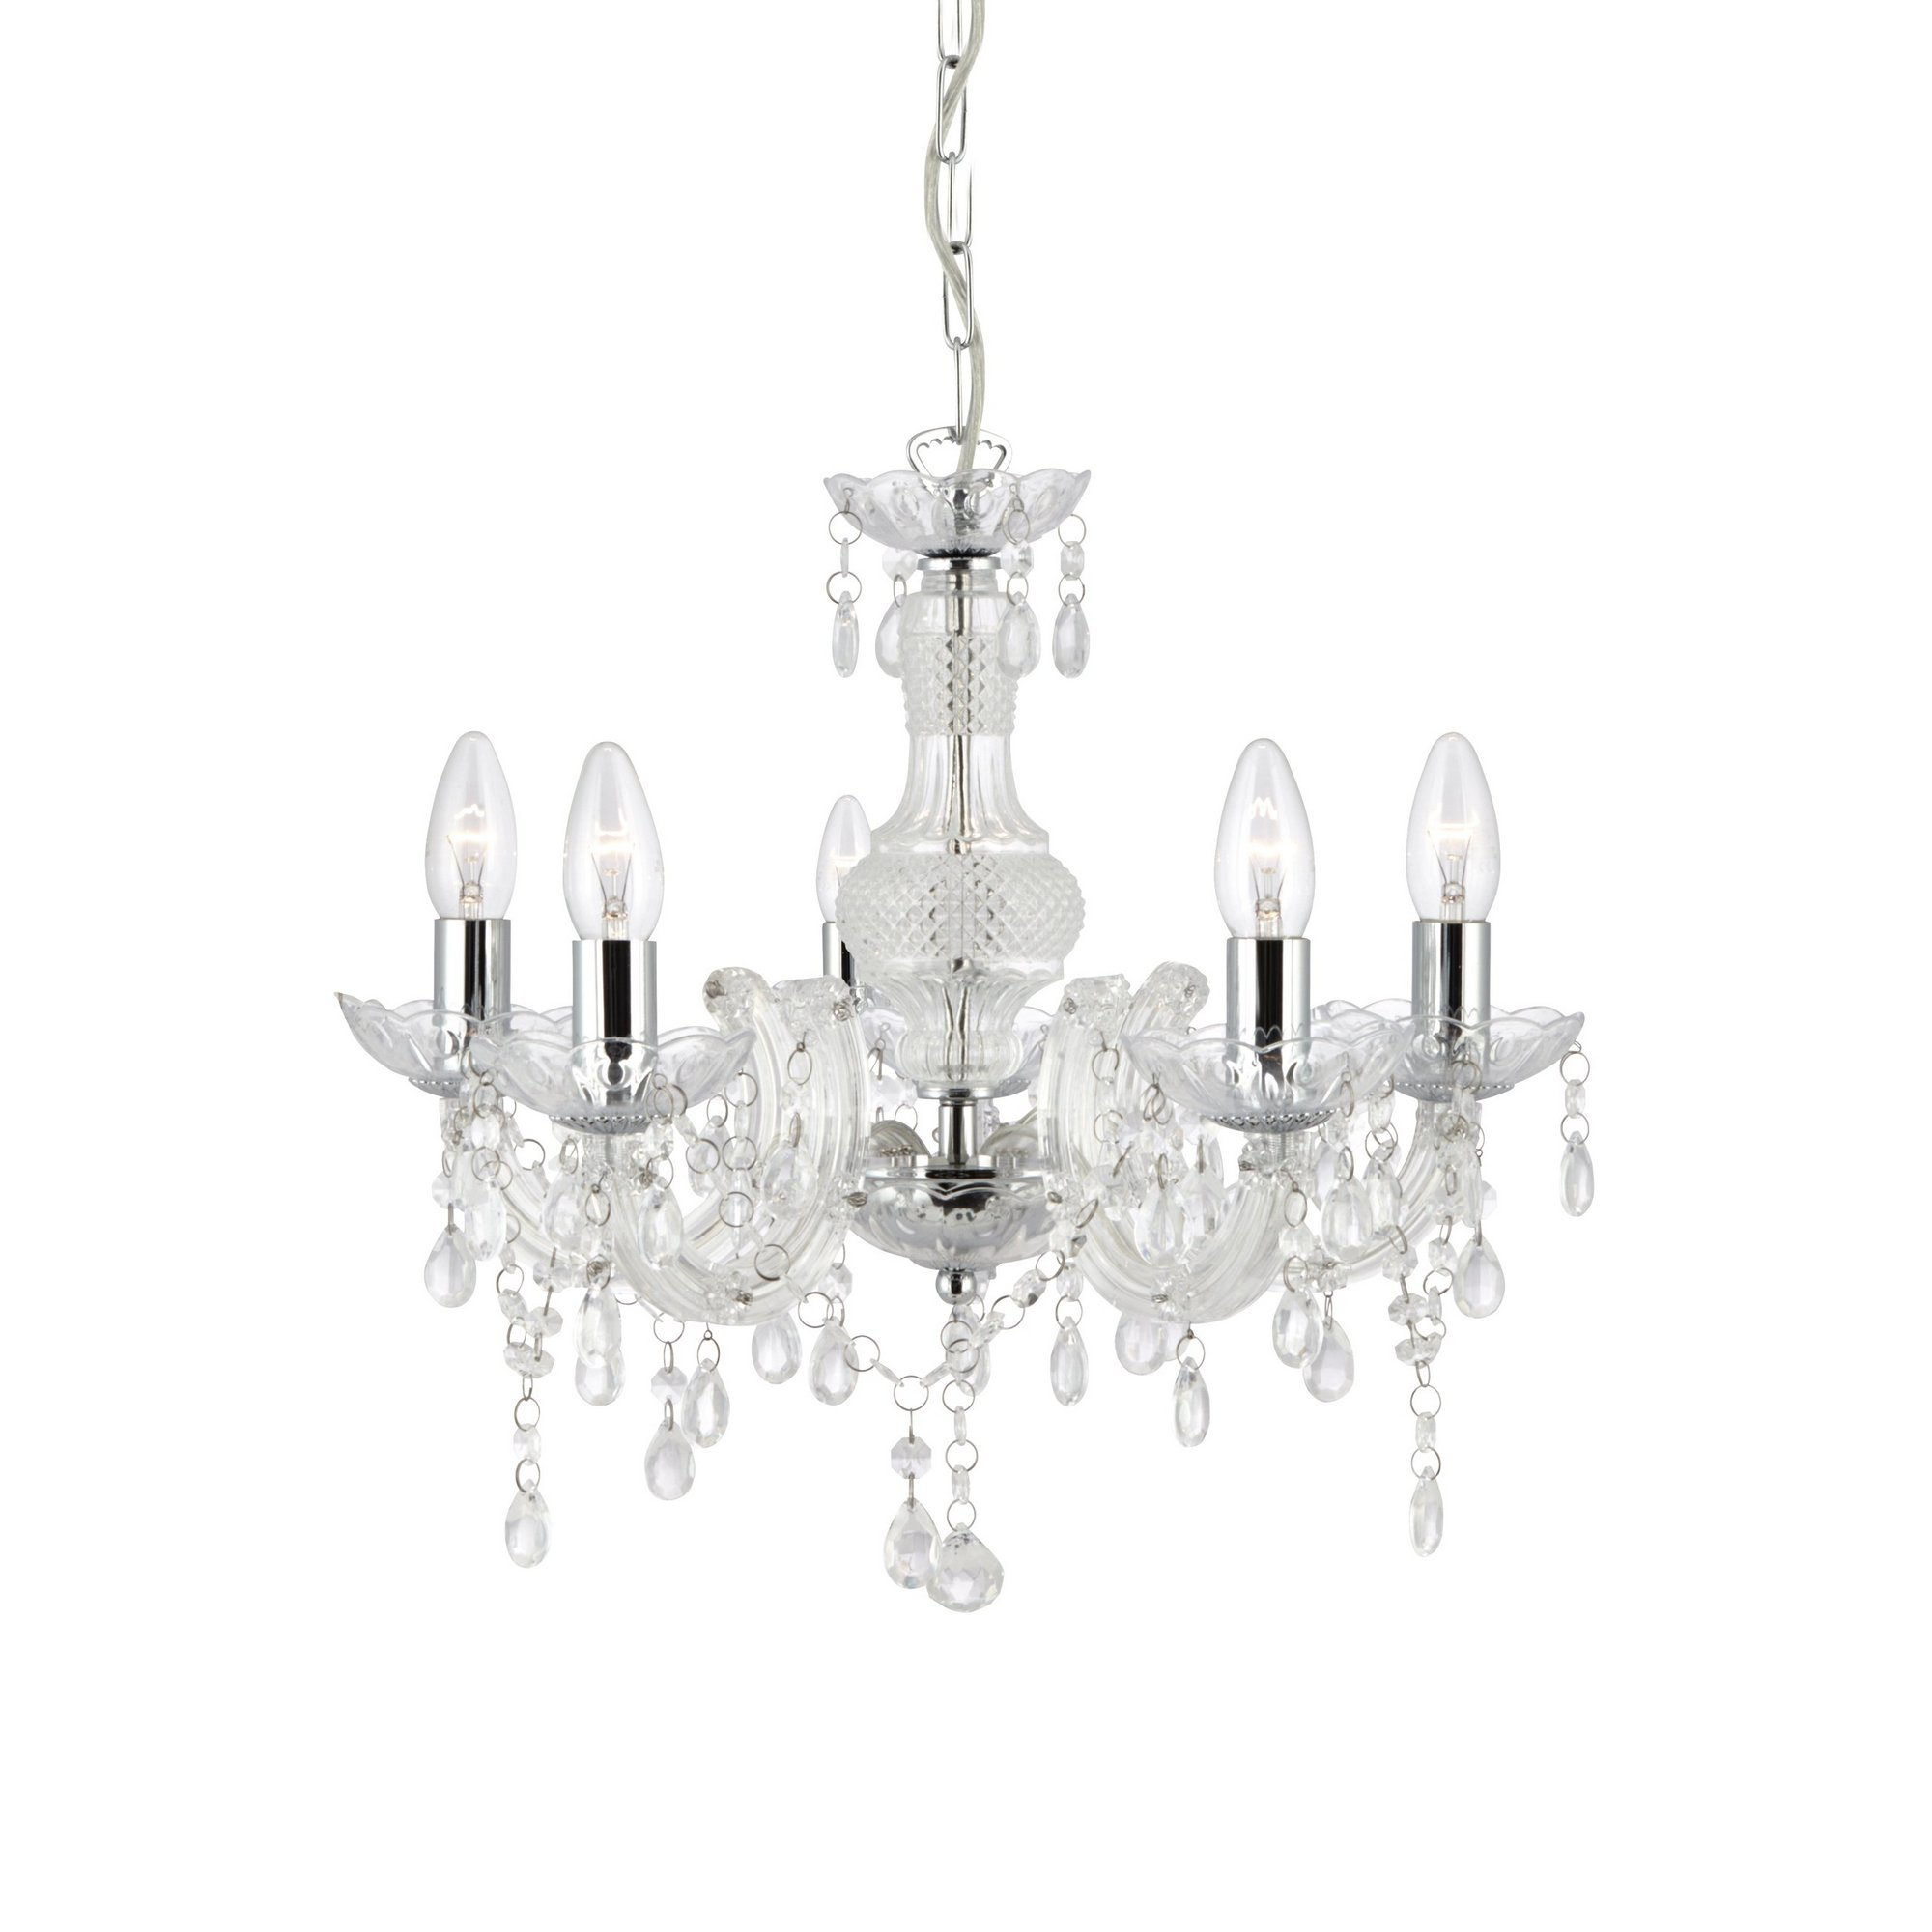 Image of 5 Light Marie Therese Chandelier